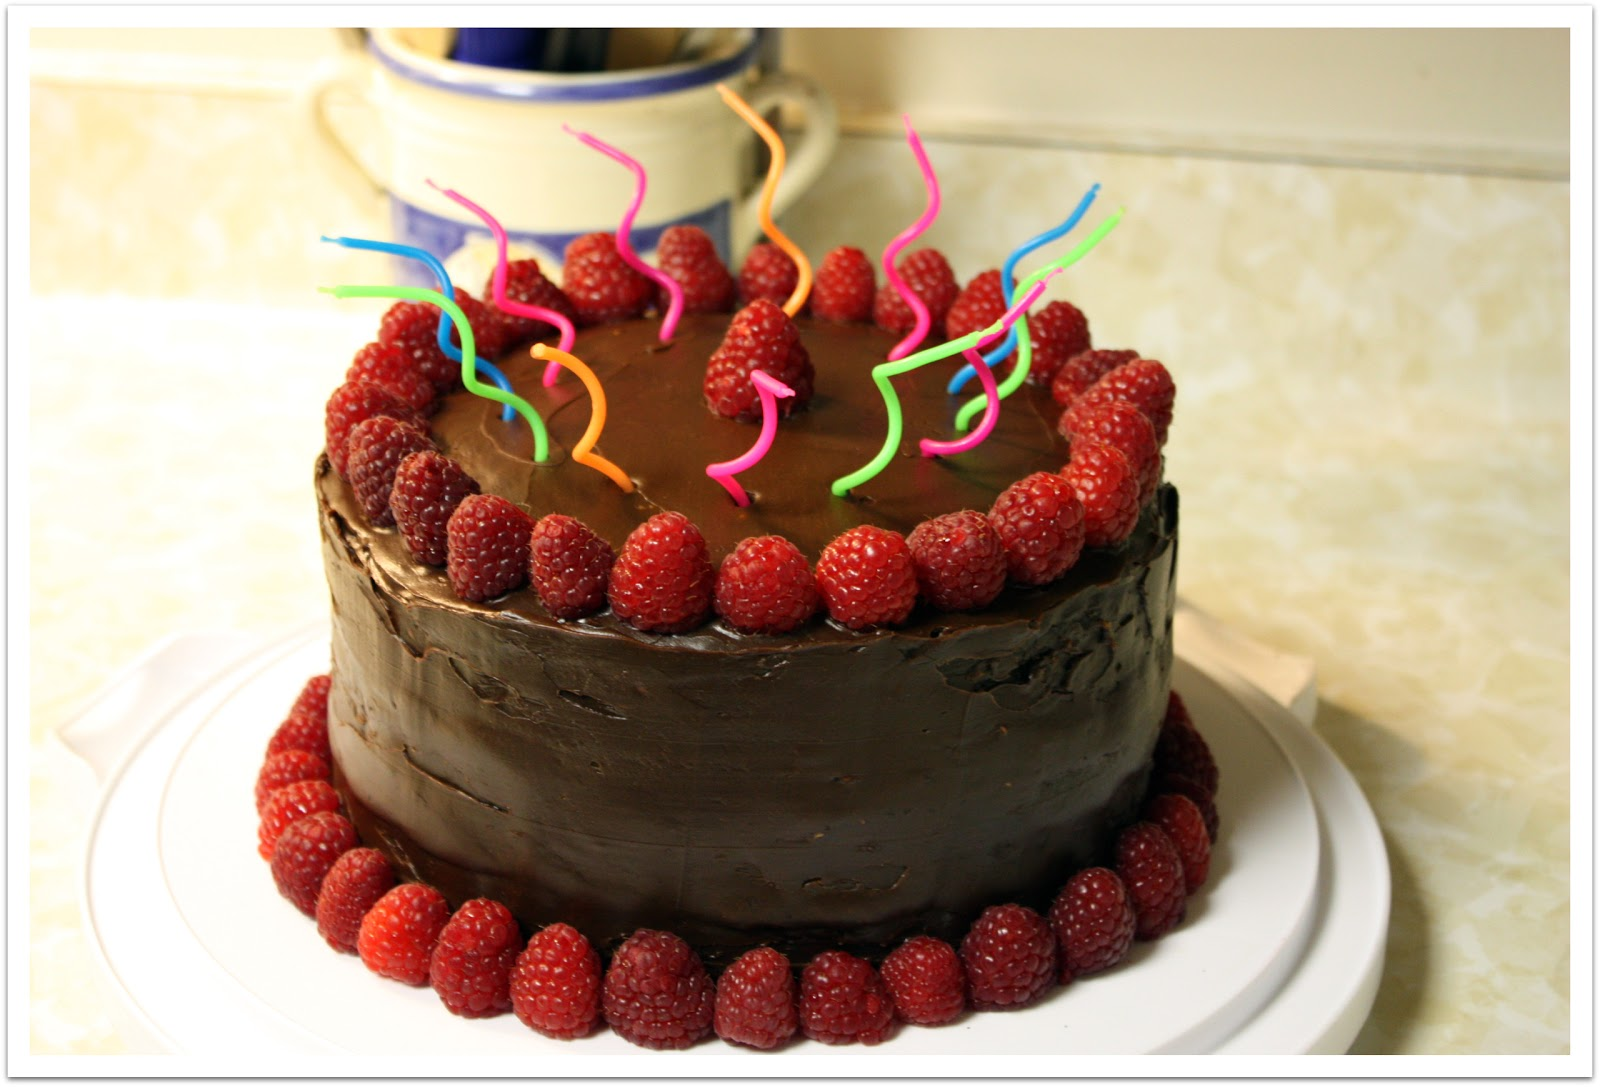 Chocolate Cake with Raspberry Filling & Chocolate Ganache Frosting